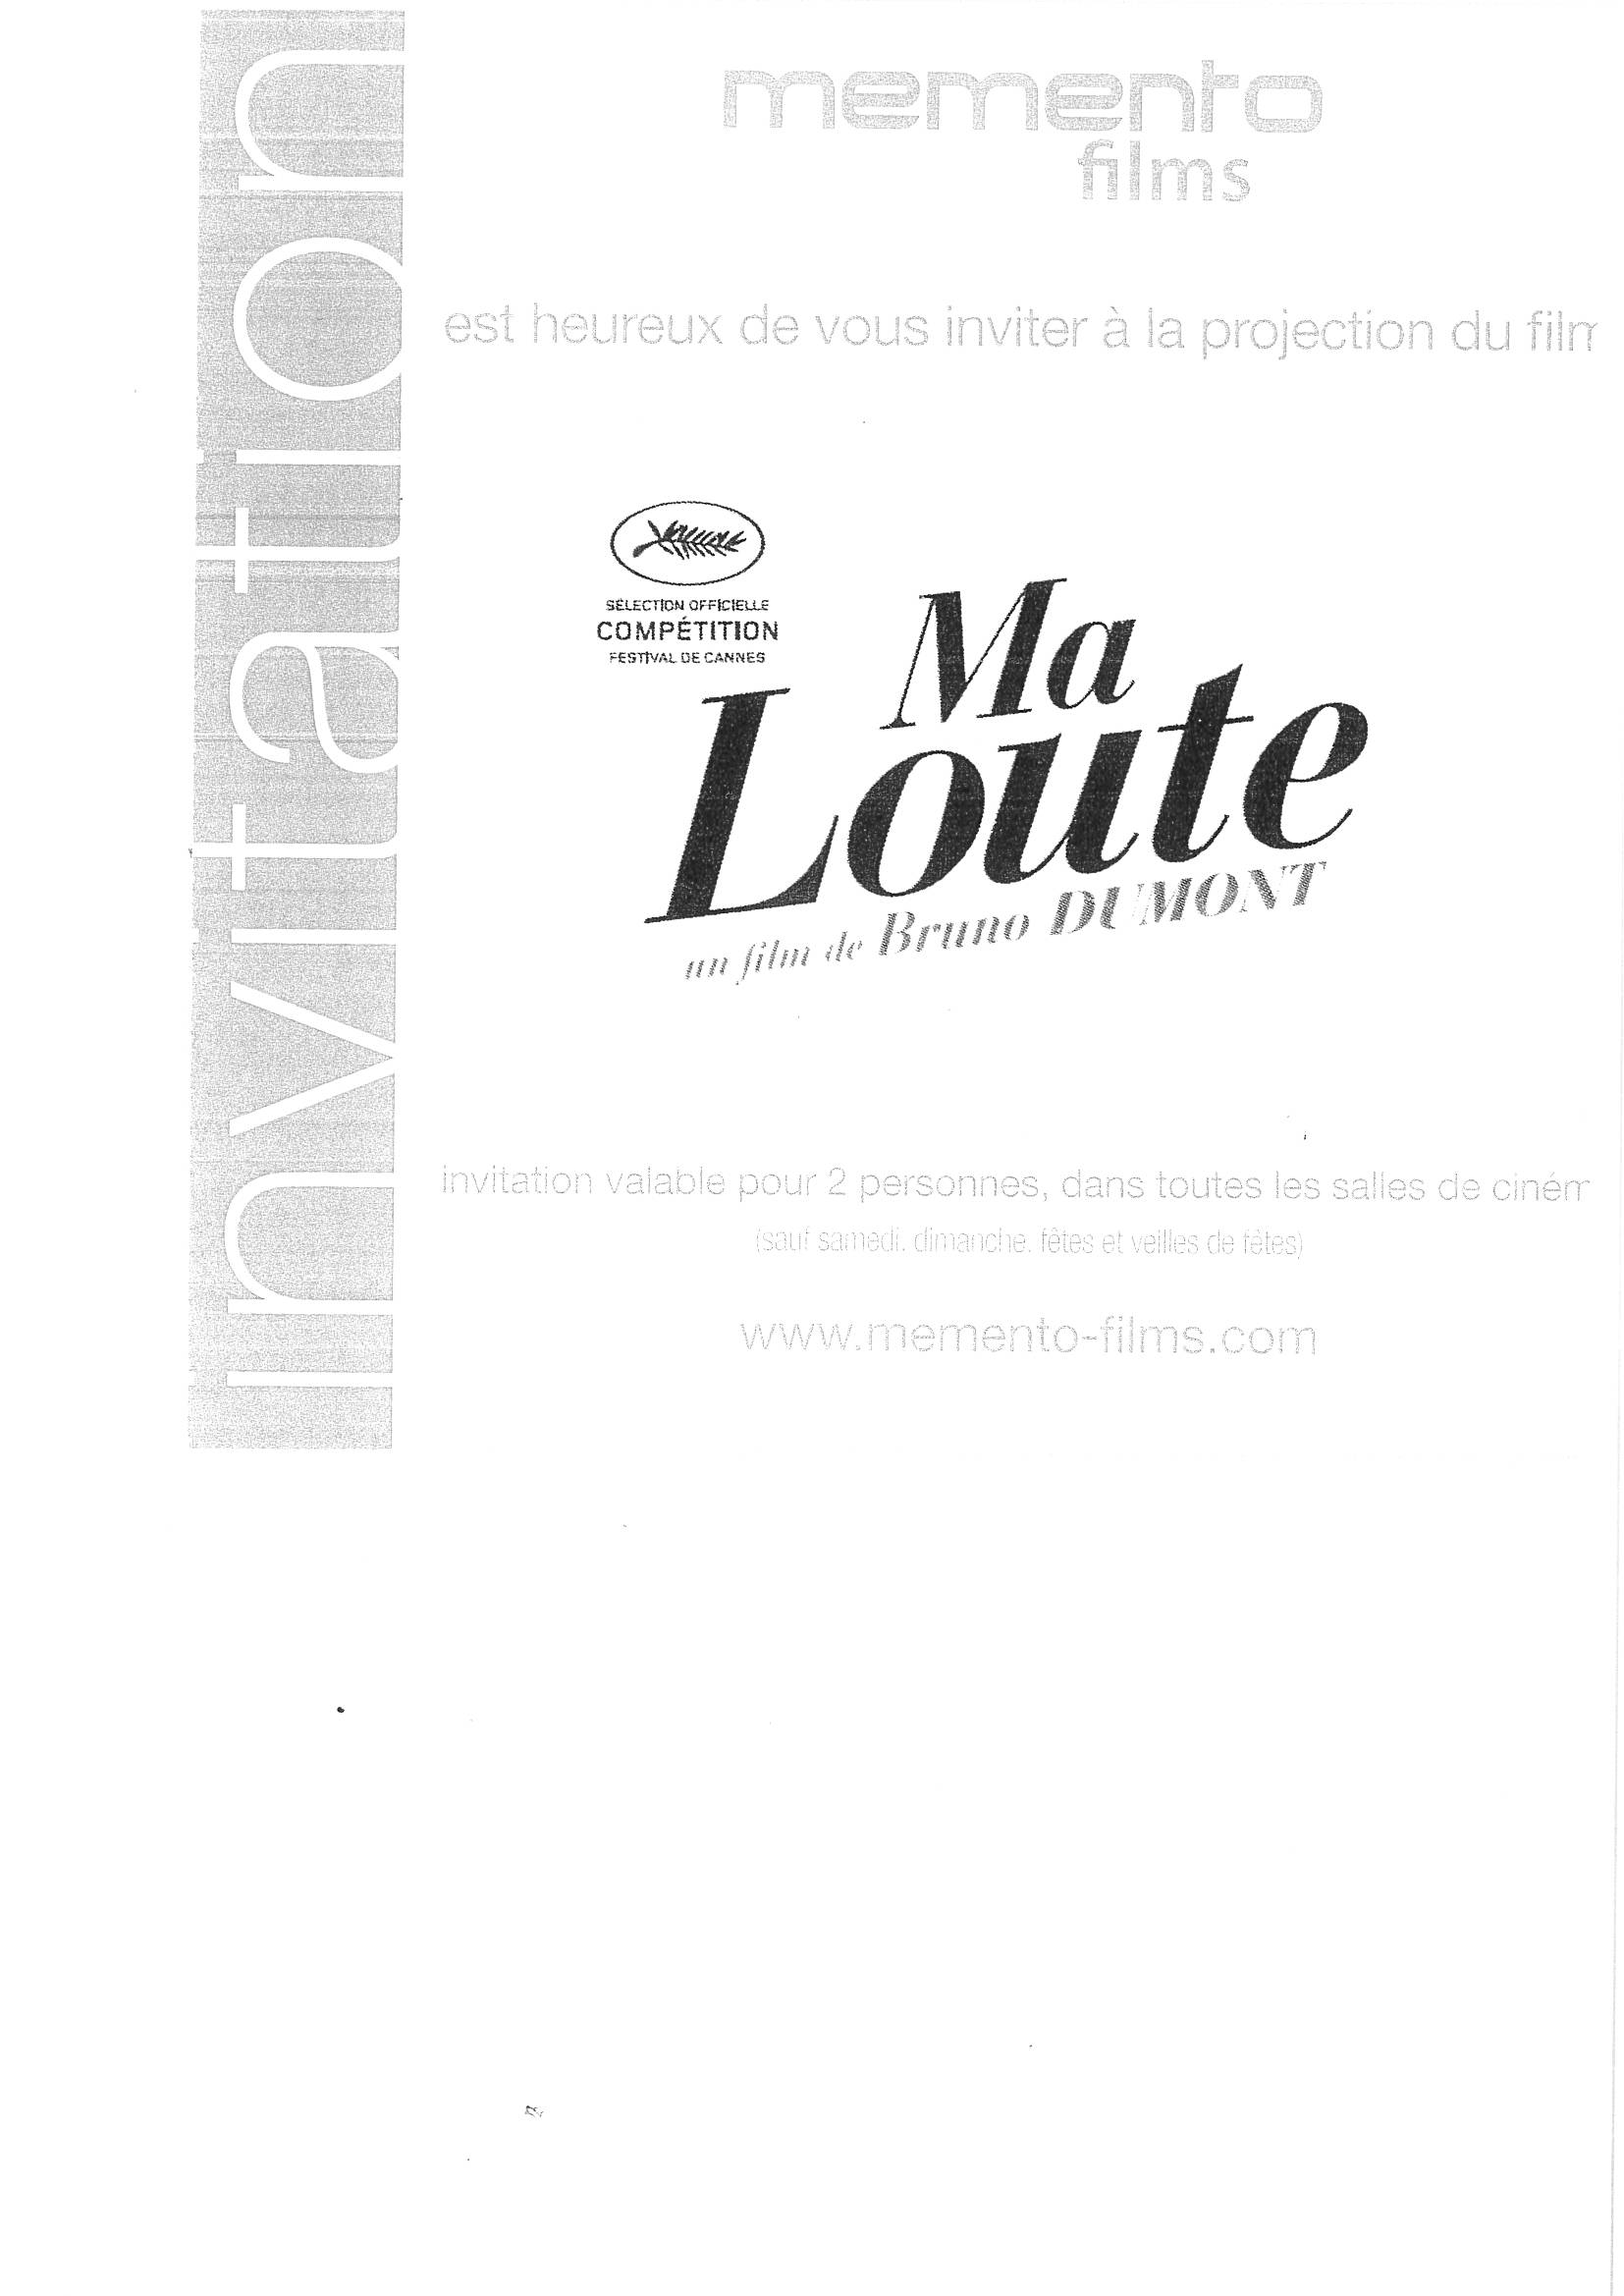 louloute_002.jpg